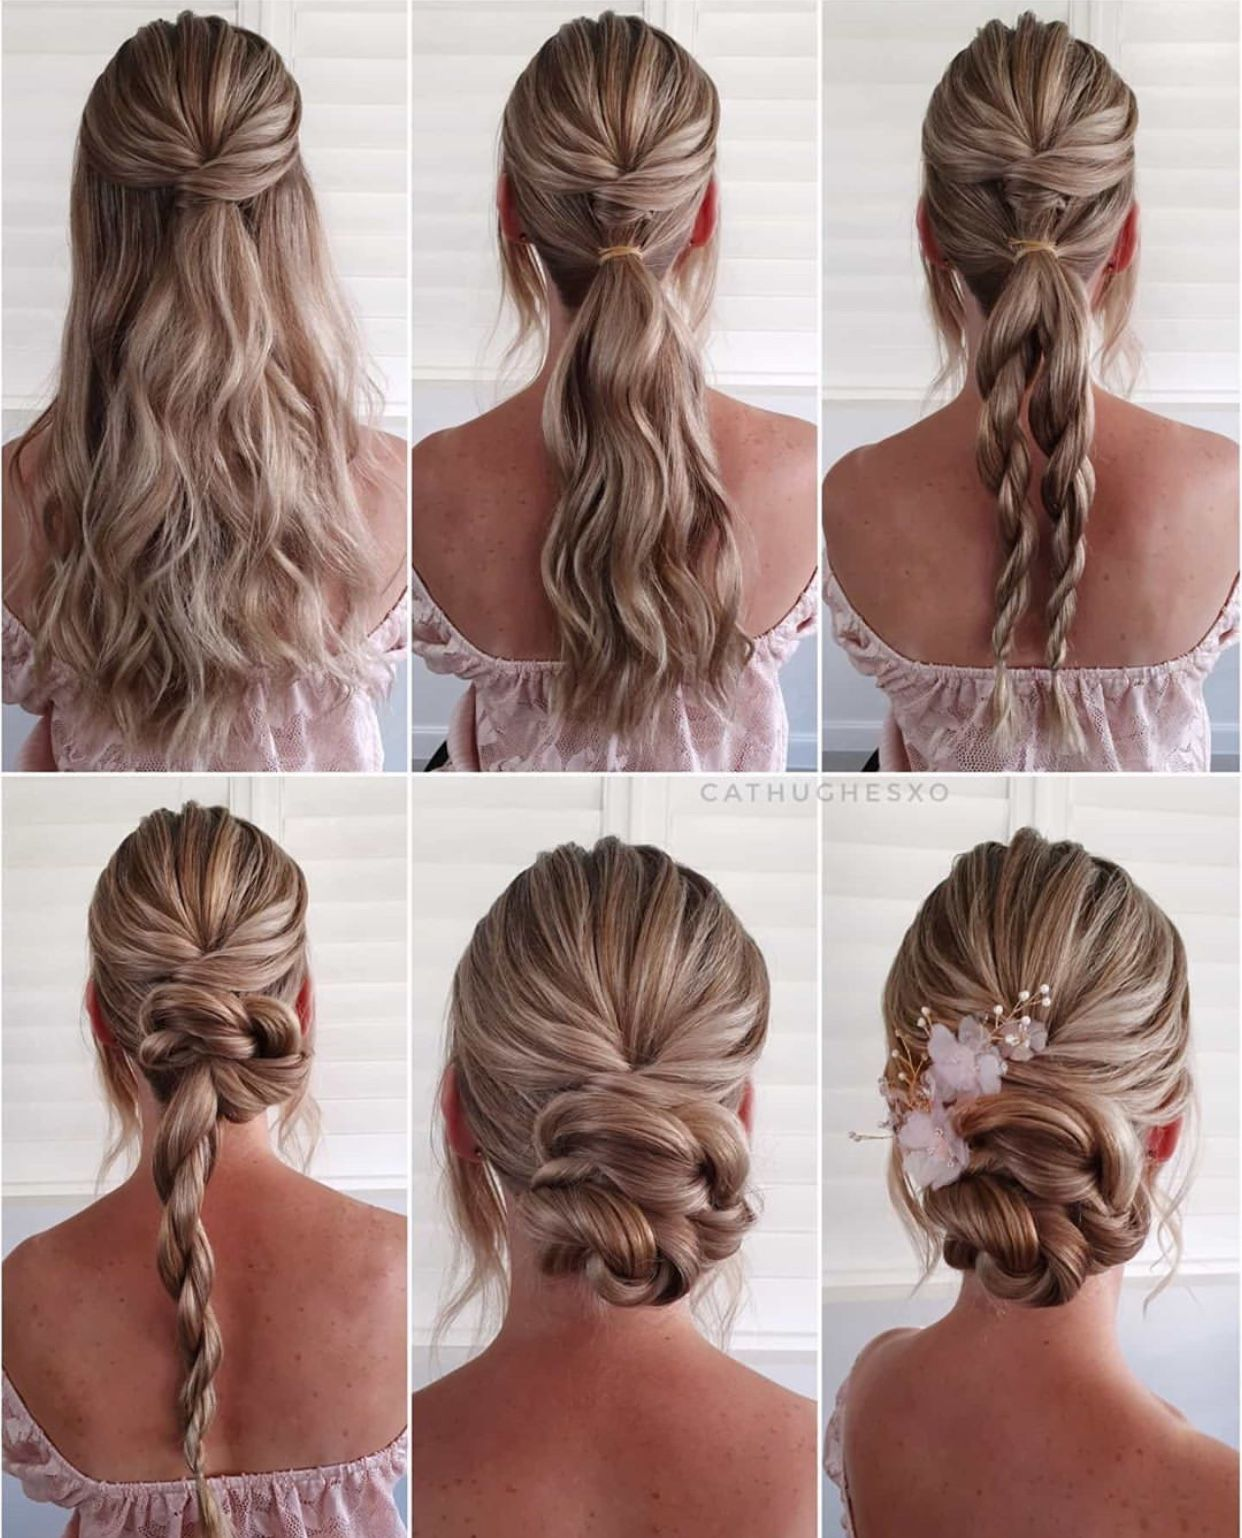 Nice hairdo 😍😍 in 10  Updo hairstyles tutorials, Braided